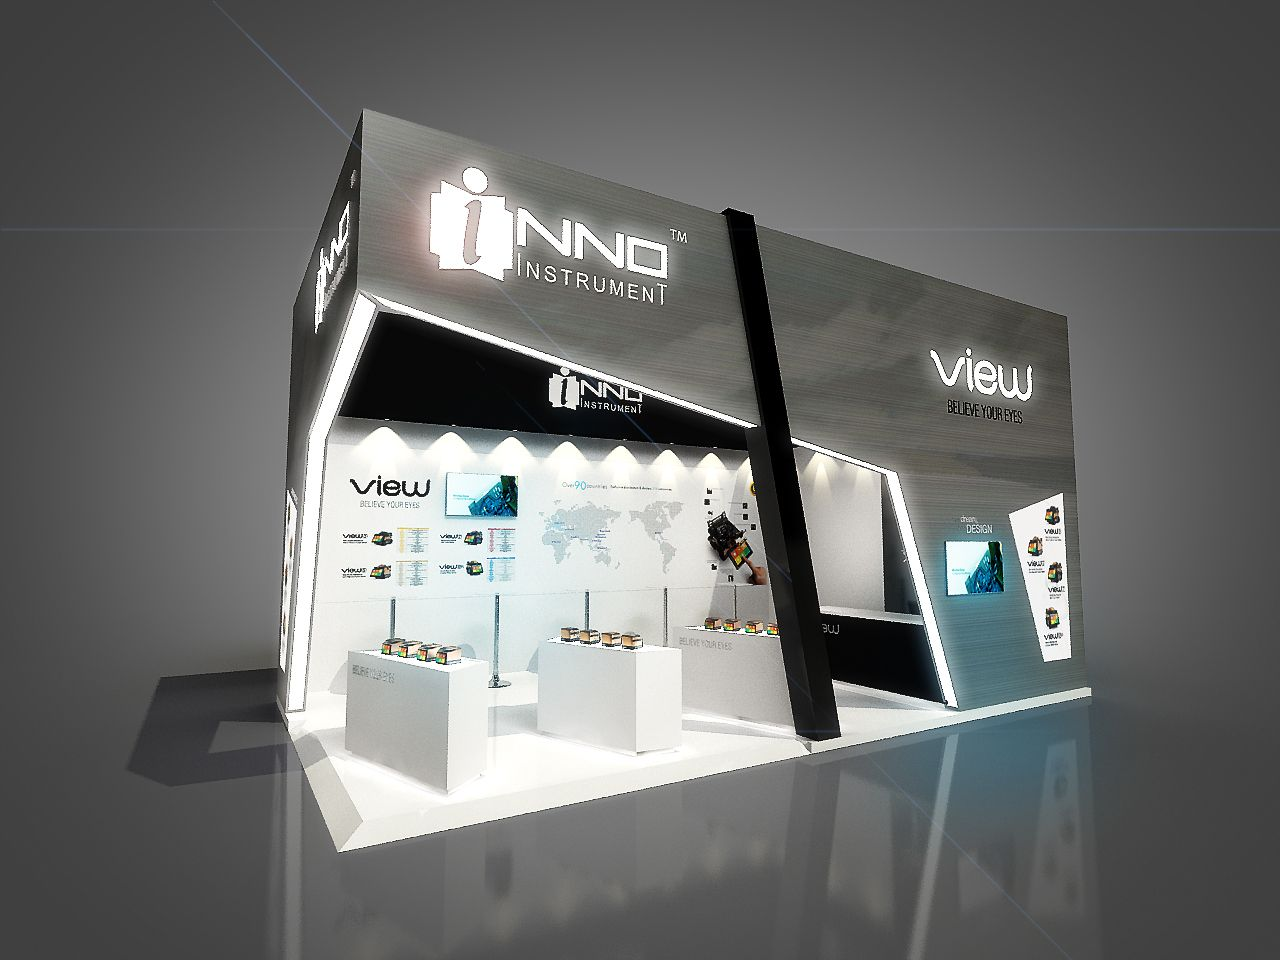 Exhibition Display Stands : Pin by jason oh on design of exhibition stand from korea